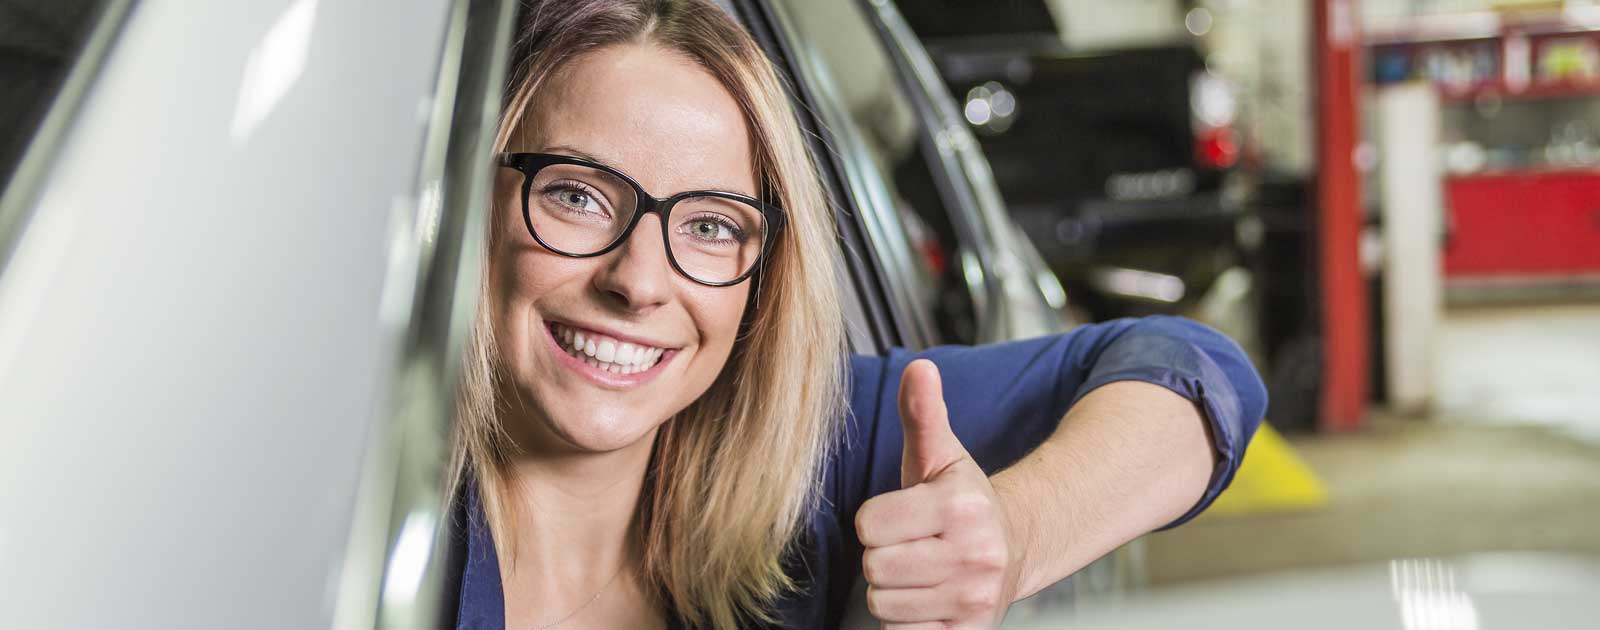 Happy Girl showing thumbs up in auto mechanic shop